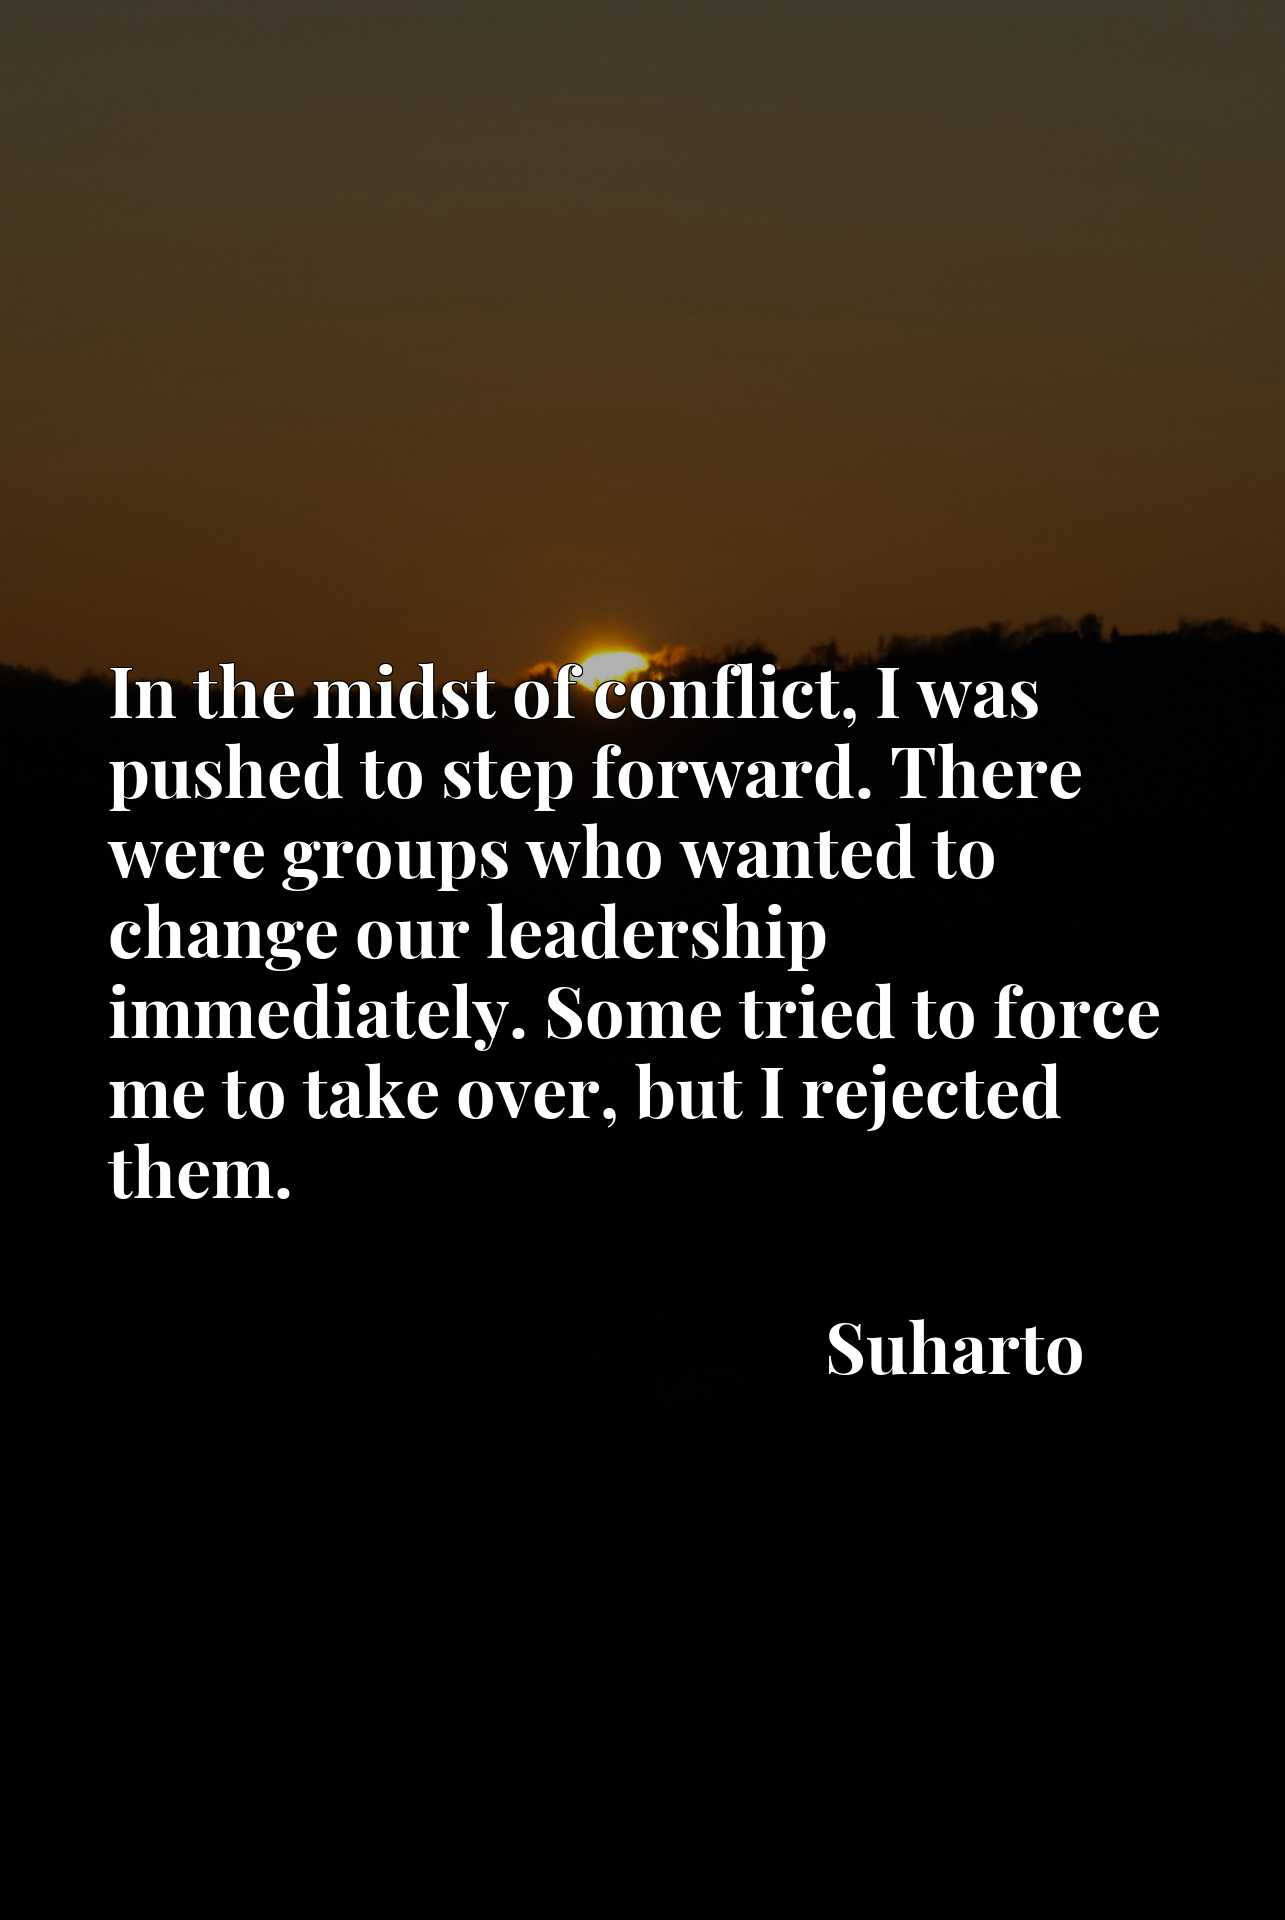 Quote Picture :In the midst of conflict, I was pushed to step forward. There were groups who wanted to change our leadership immediately. Some tried to force me to take over, but I rejected them.